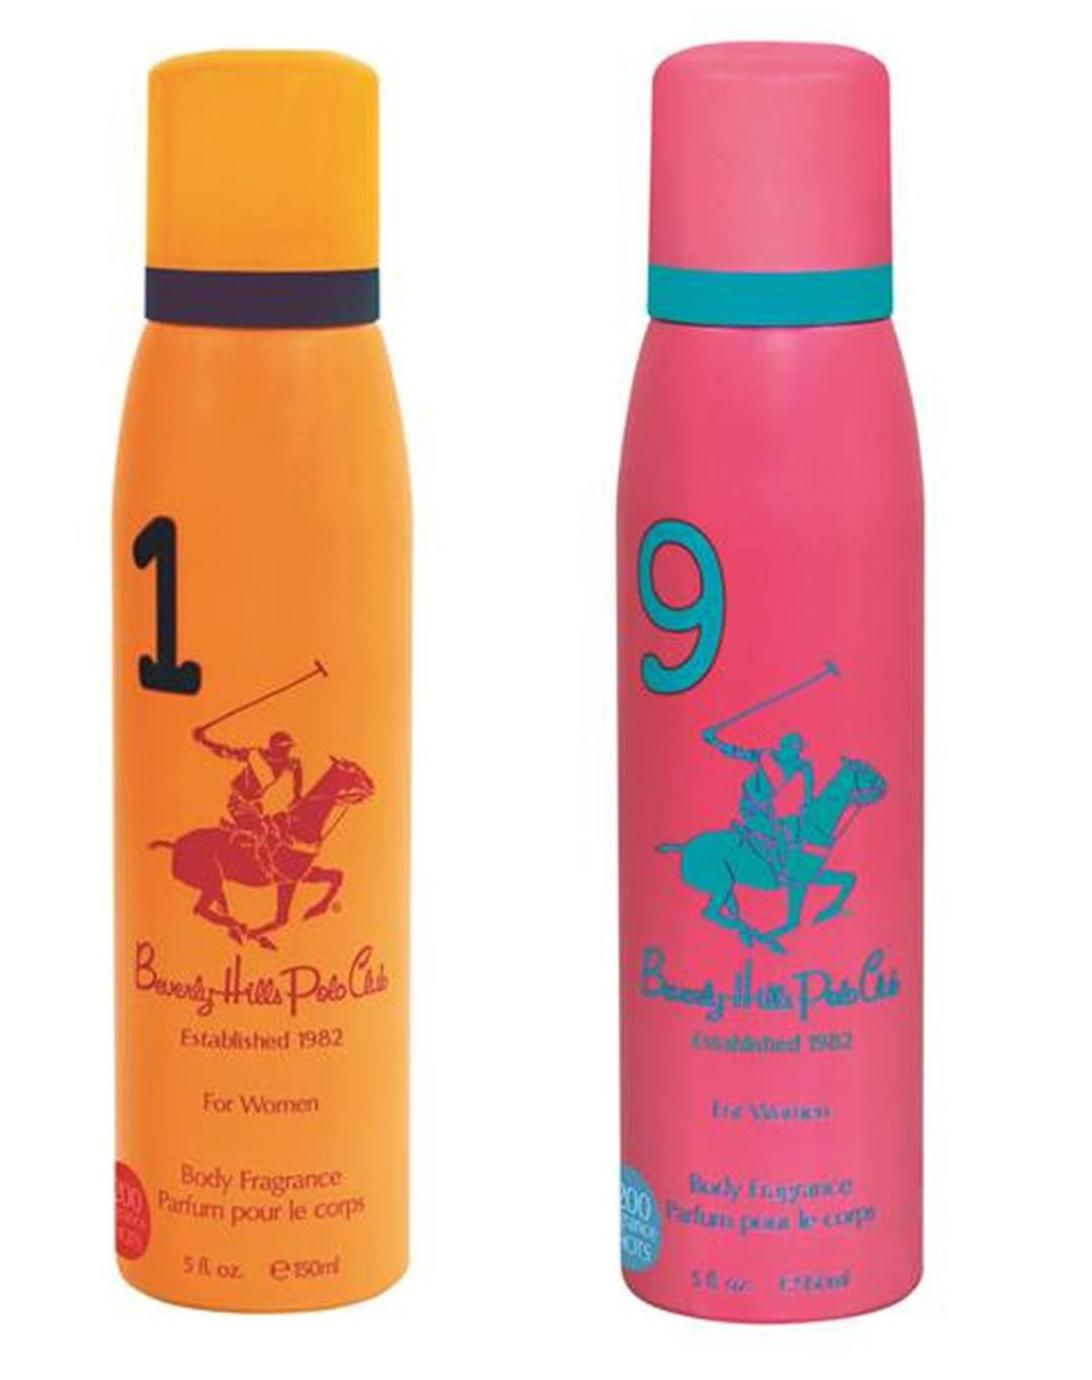 Beverly Hills Polo Club Sport Deodorant for Female No 1 9 (Pack of 2) 300ml